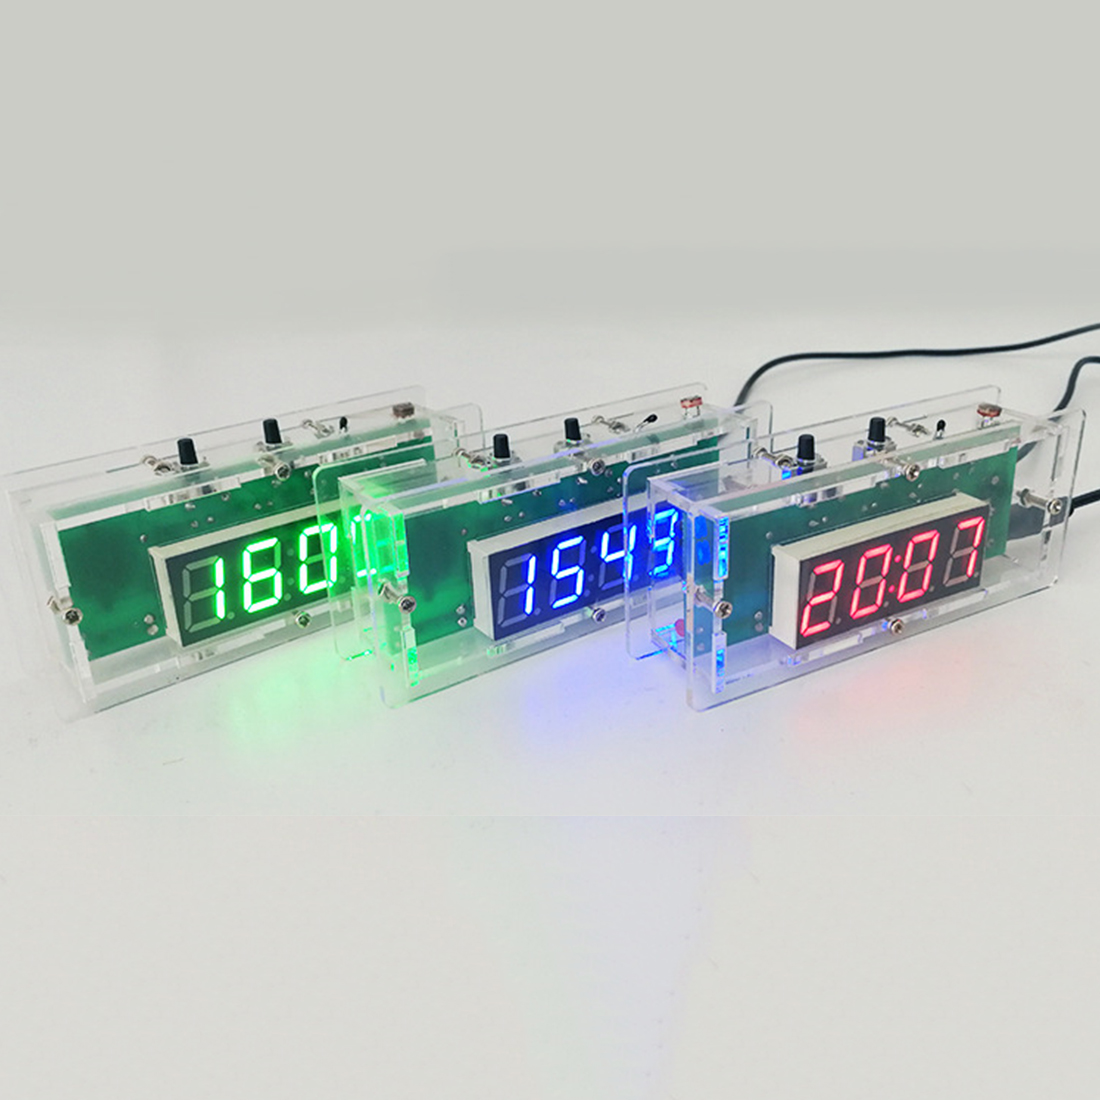 Free Shipping 4-digit Light Control Temperature Date Time Display W/ Transparent Case Compact DIY Digital LED Clock Kit 100 pcs ld 3361ag 3 digit 0 36 green 7 segment led display common cathode